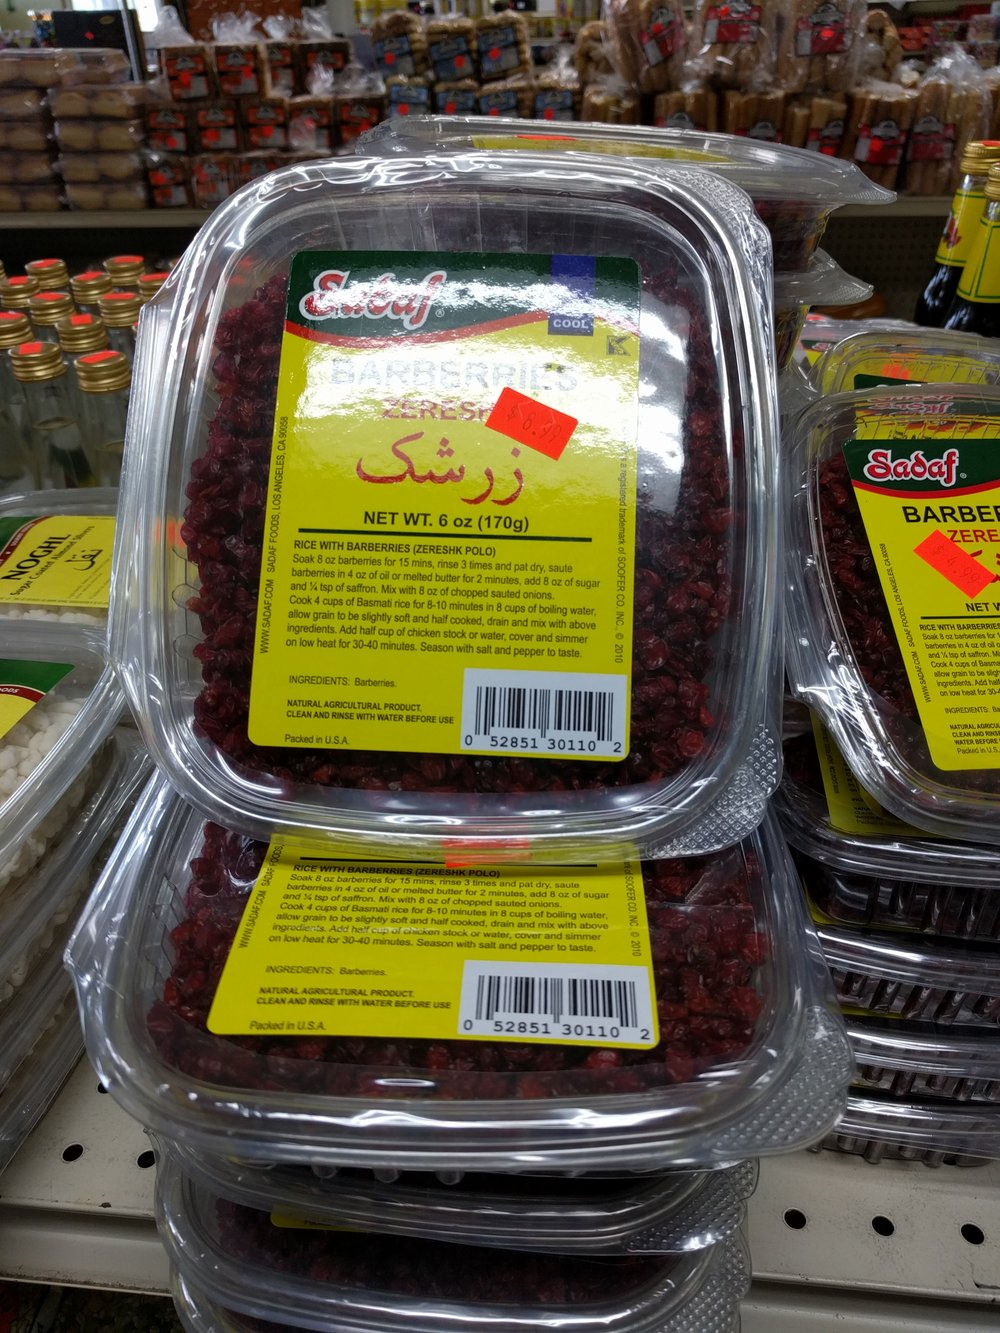 Sadaf-raspberries-Pak-Halal-International-Foods-12259-W-87th-St-Pkwy-Lenexa-KS-66215.jpg